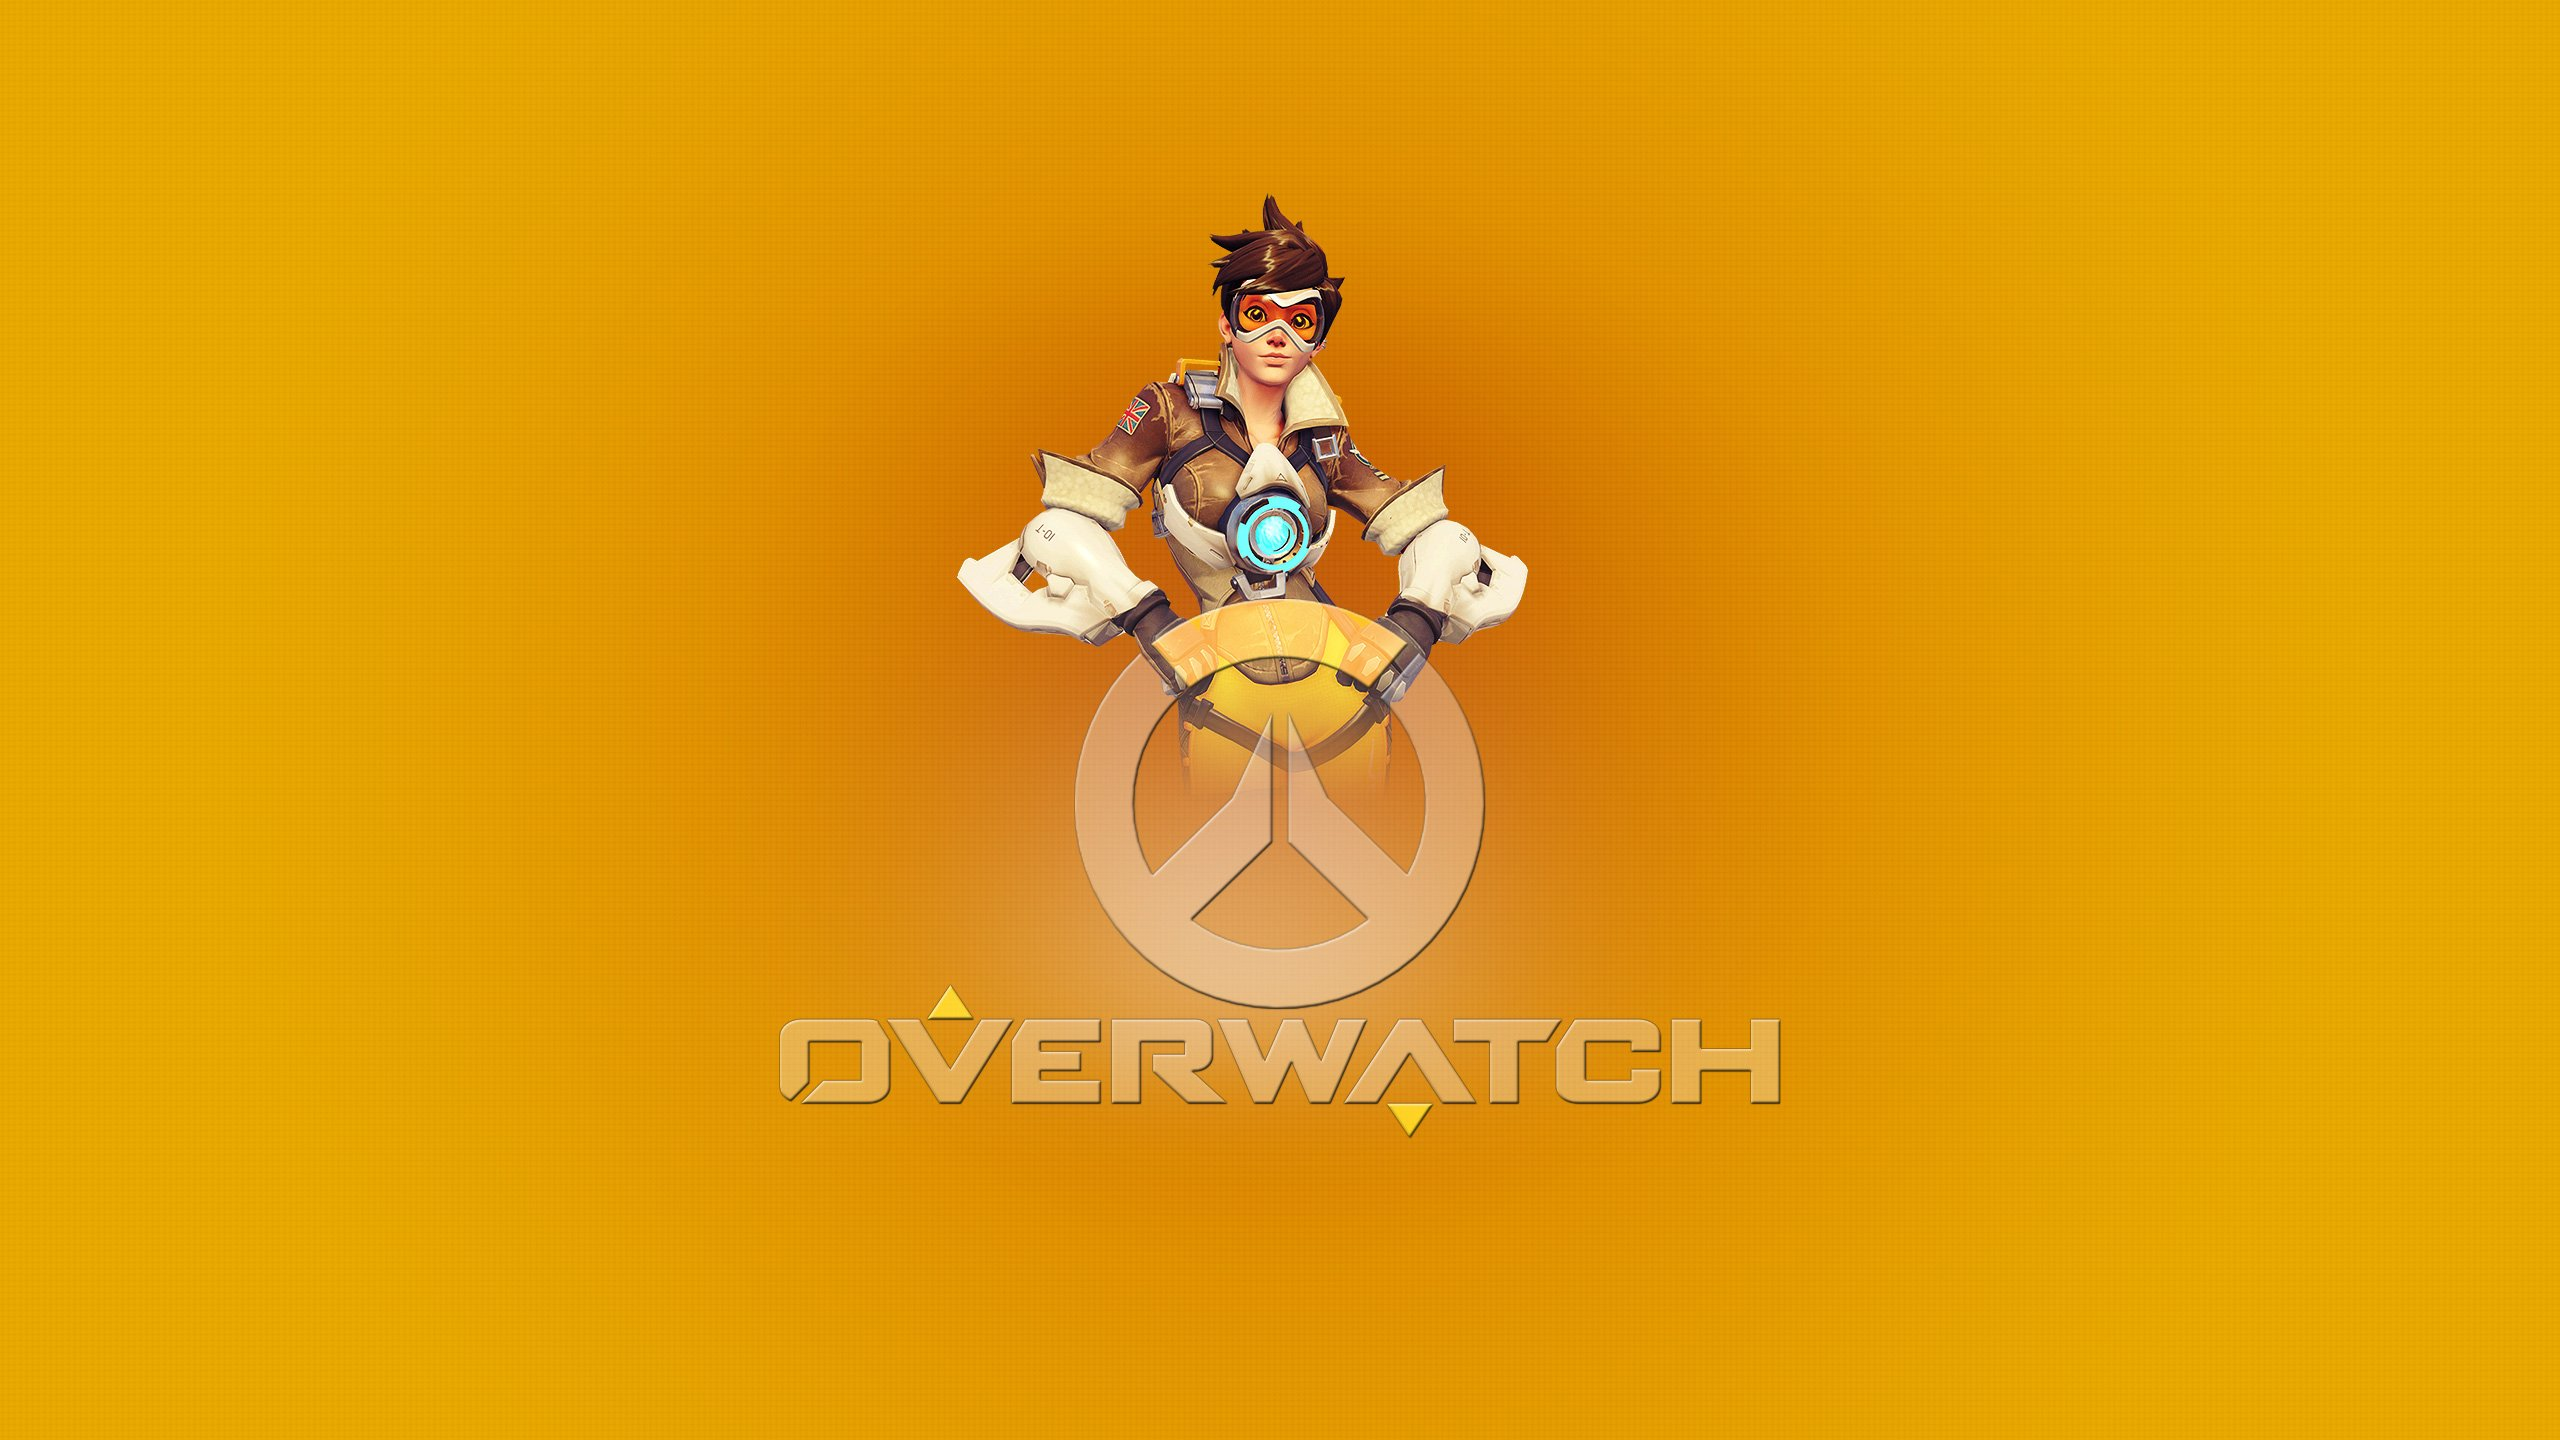 Overwatch Tracer Poster Wallpapers HD Wallpapers 2560x1440